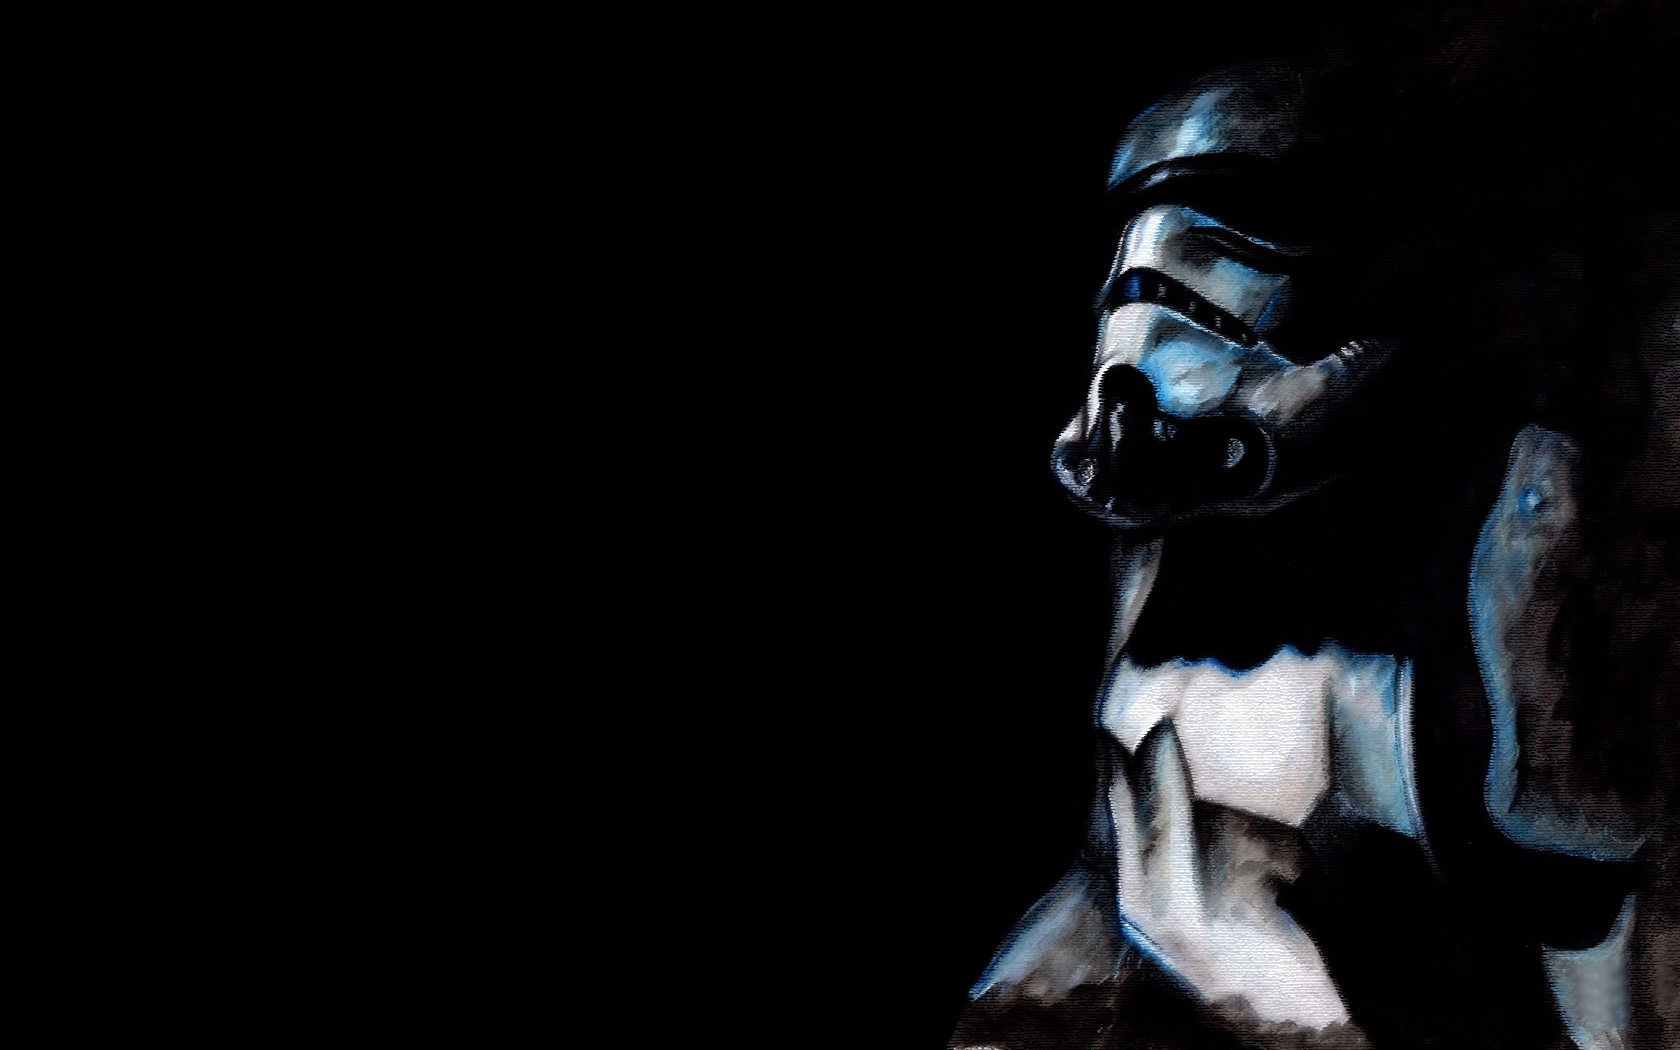 Title Star Wars Wallpaper And Background Image